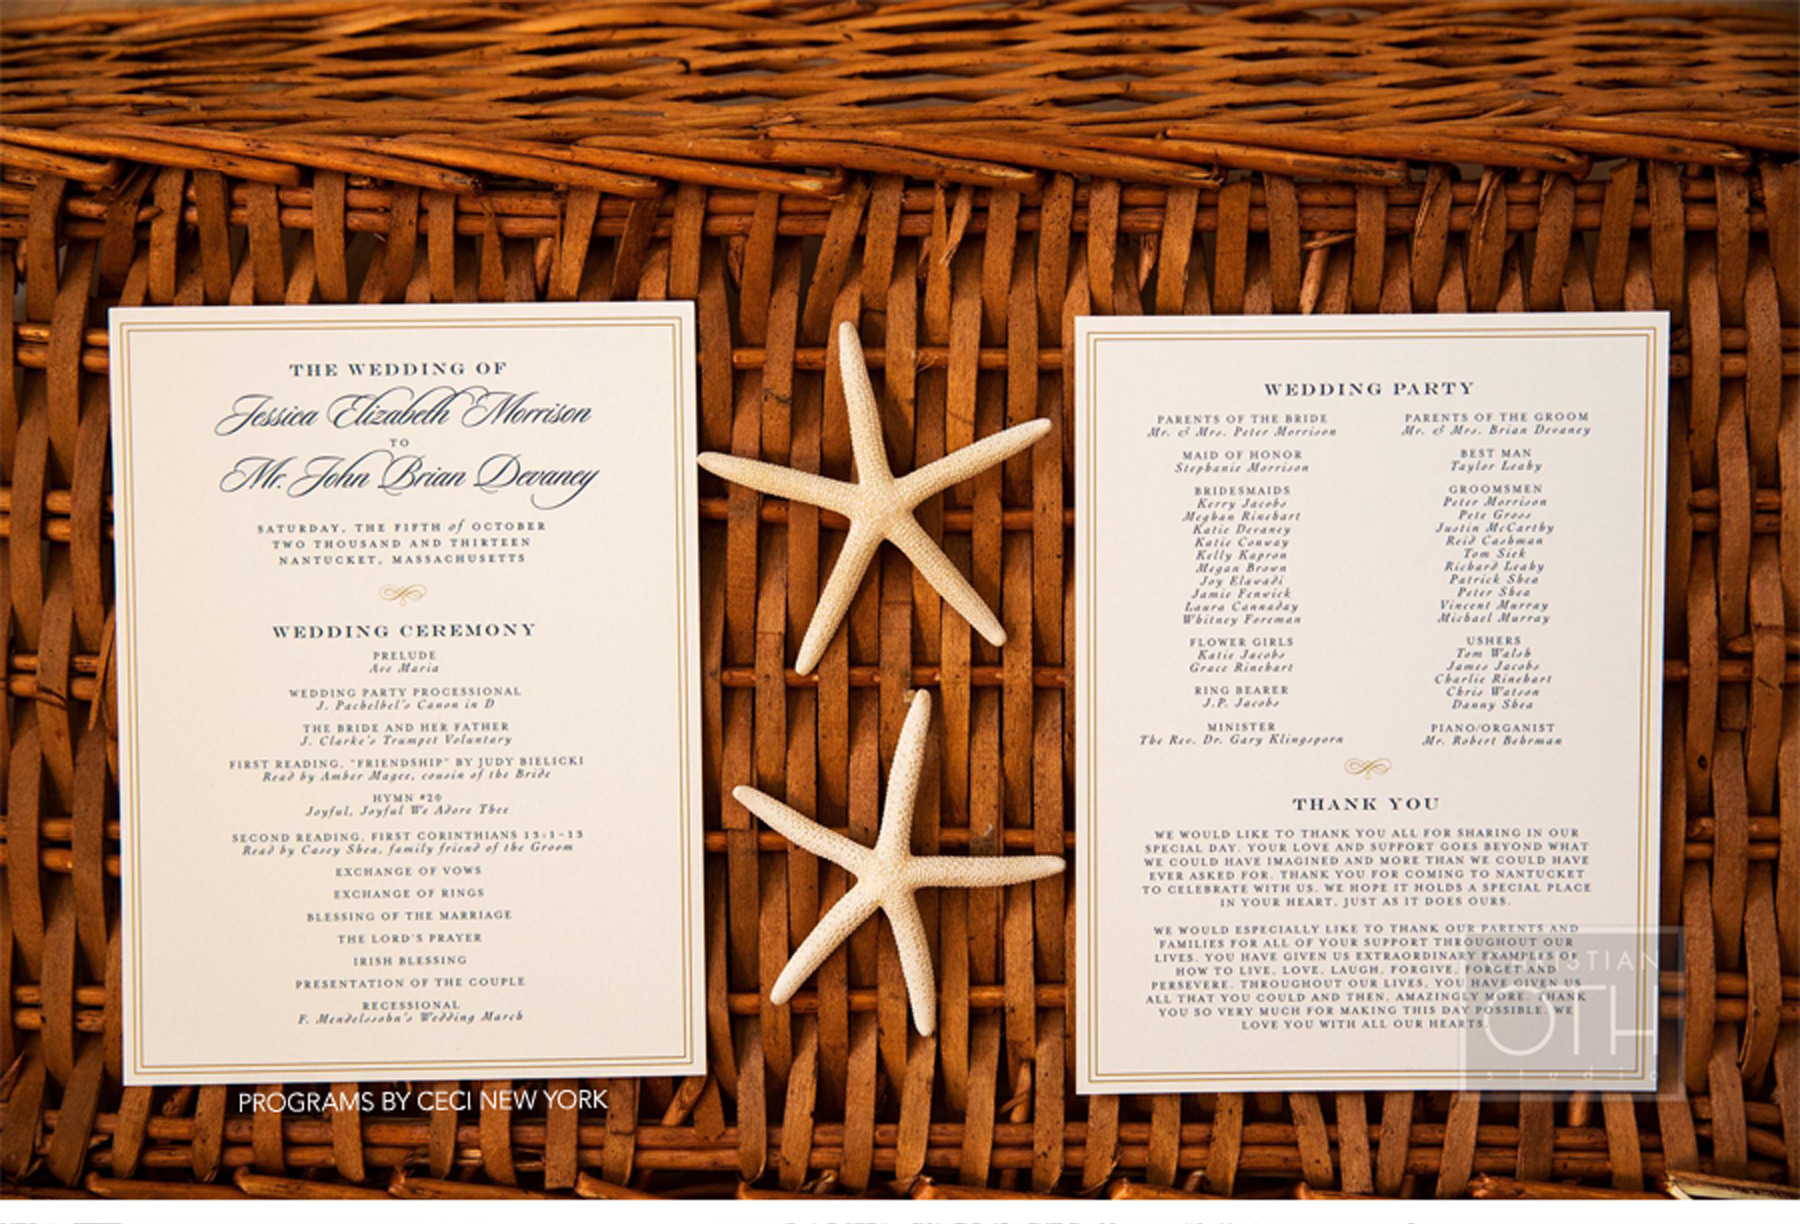 Our Muse - Navy Nantucket Wedding - Be inspired by Jessica & John's navy blue Nantucket wedding - program, ceci new york, offset, printing, wedding, nantucket, navy blue, blush, new england, lighthouse